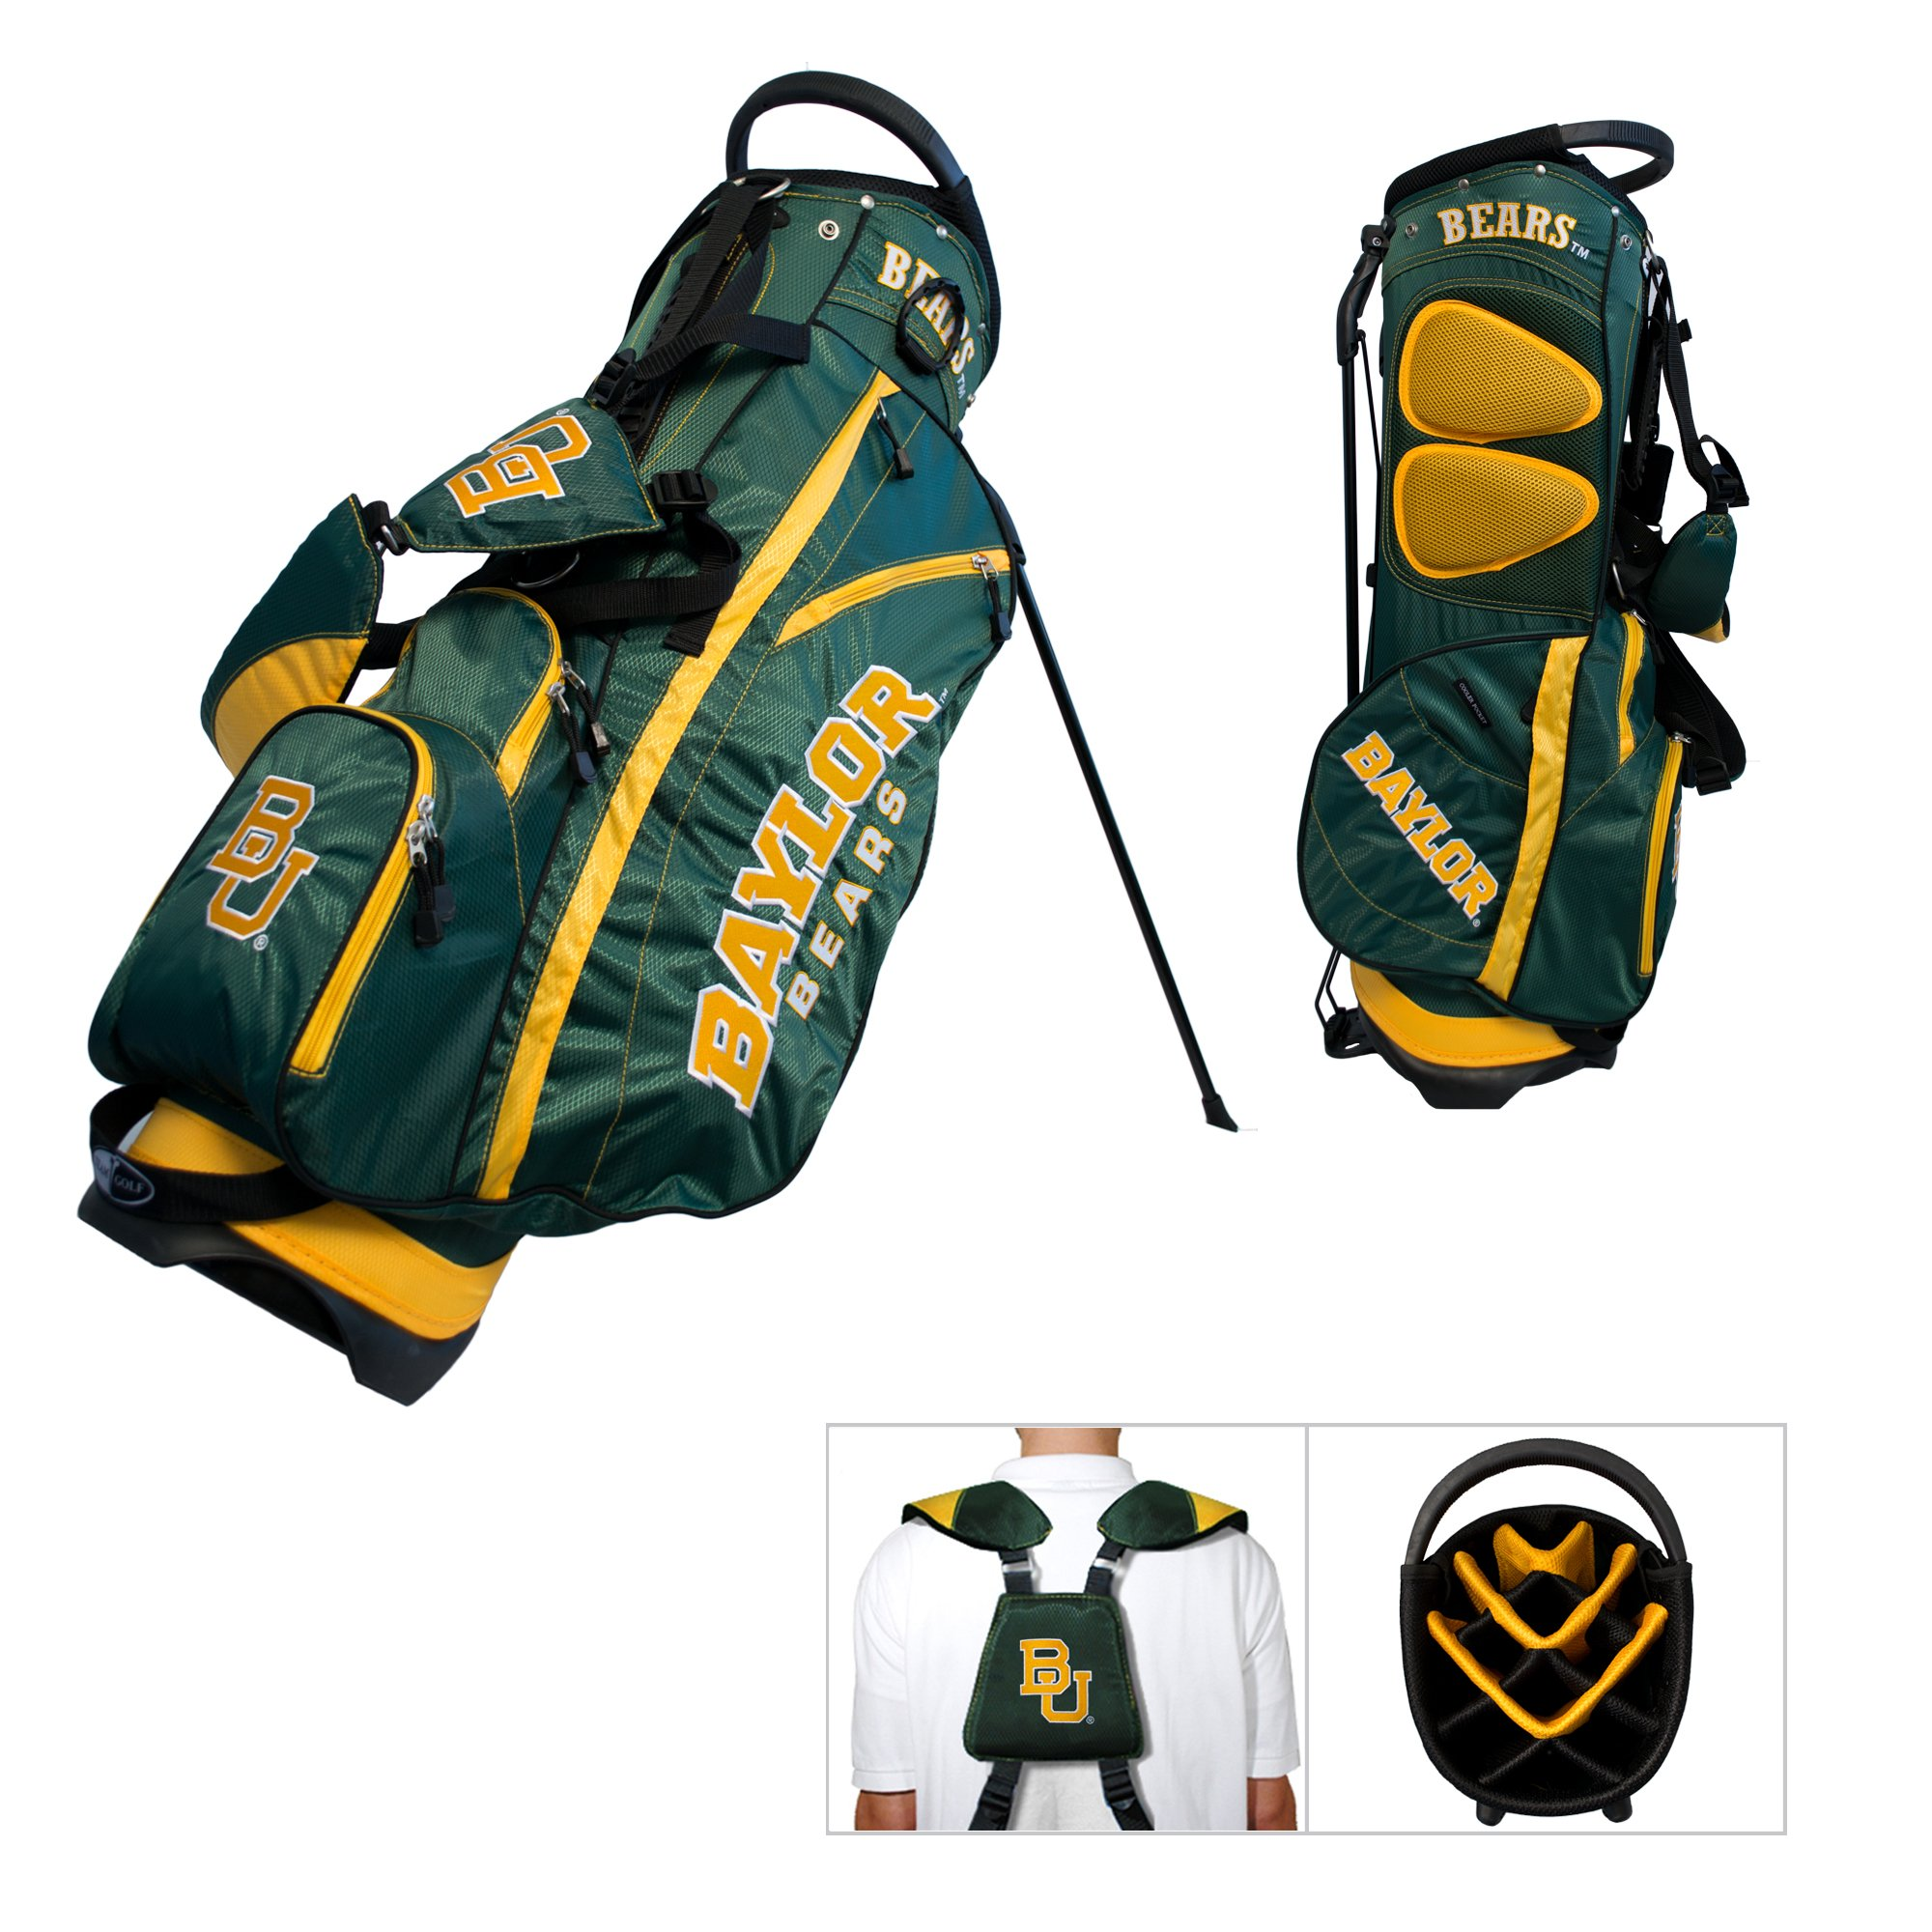 Baylor Bears Team Golf Fairway Lightweight 14-Way Top Golf Club Stand Bag by Team Golf (Image #1)